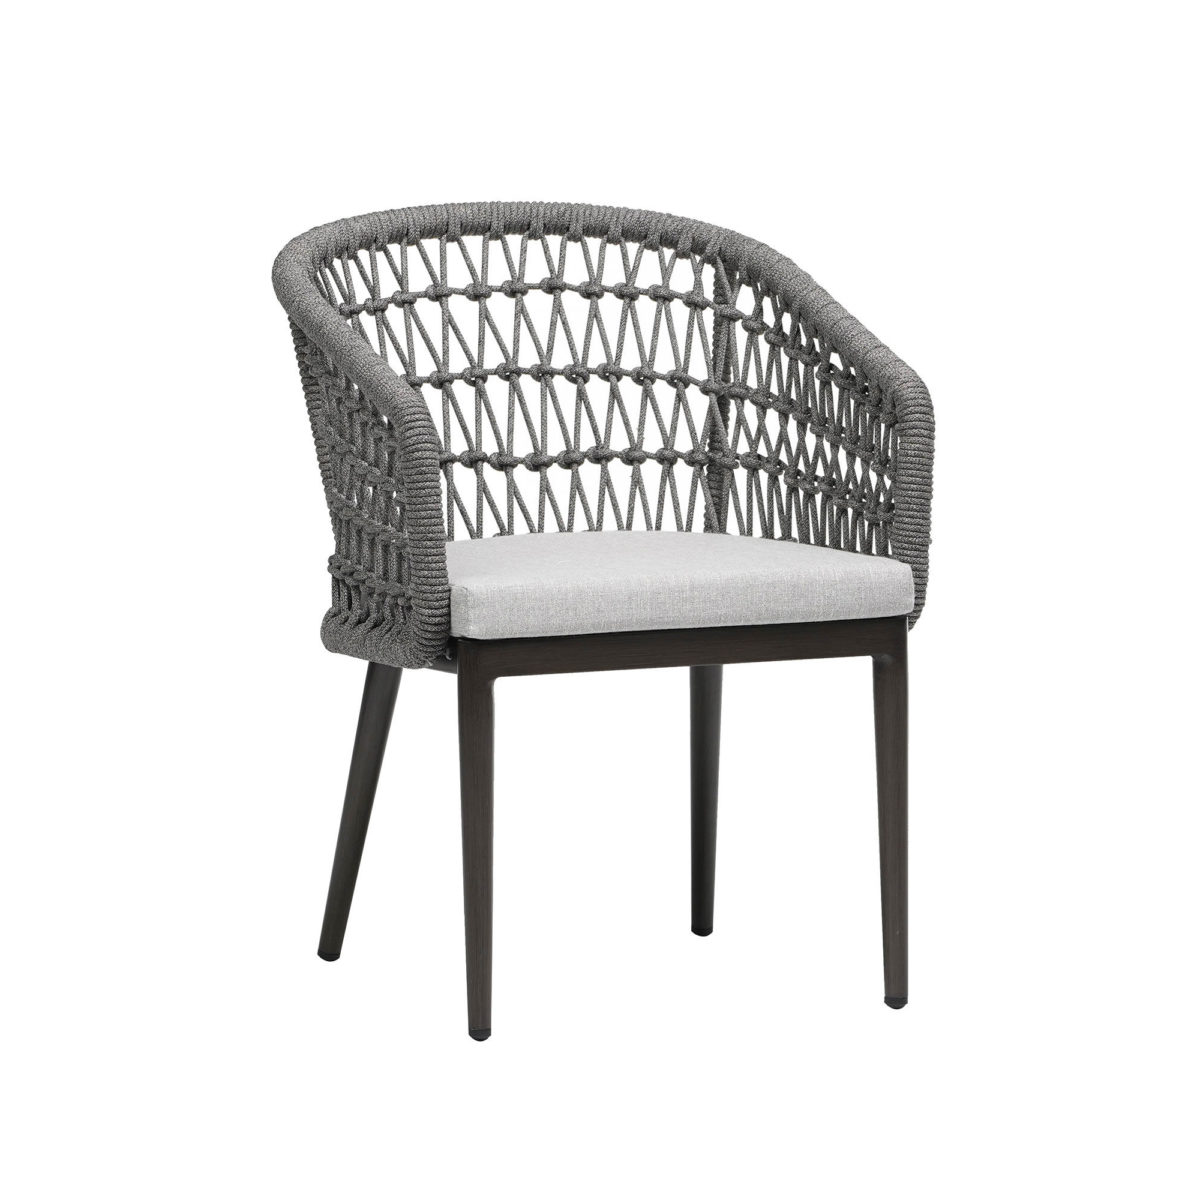 The Poinciana dining arm chair.